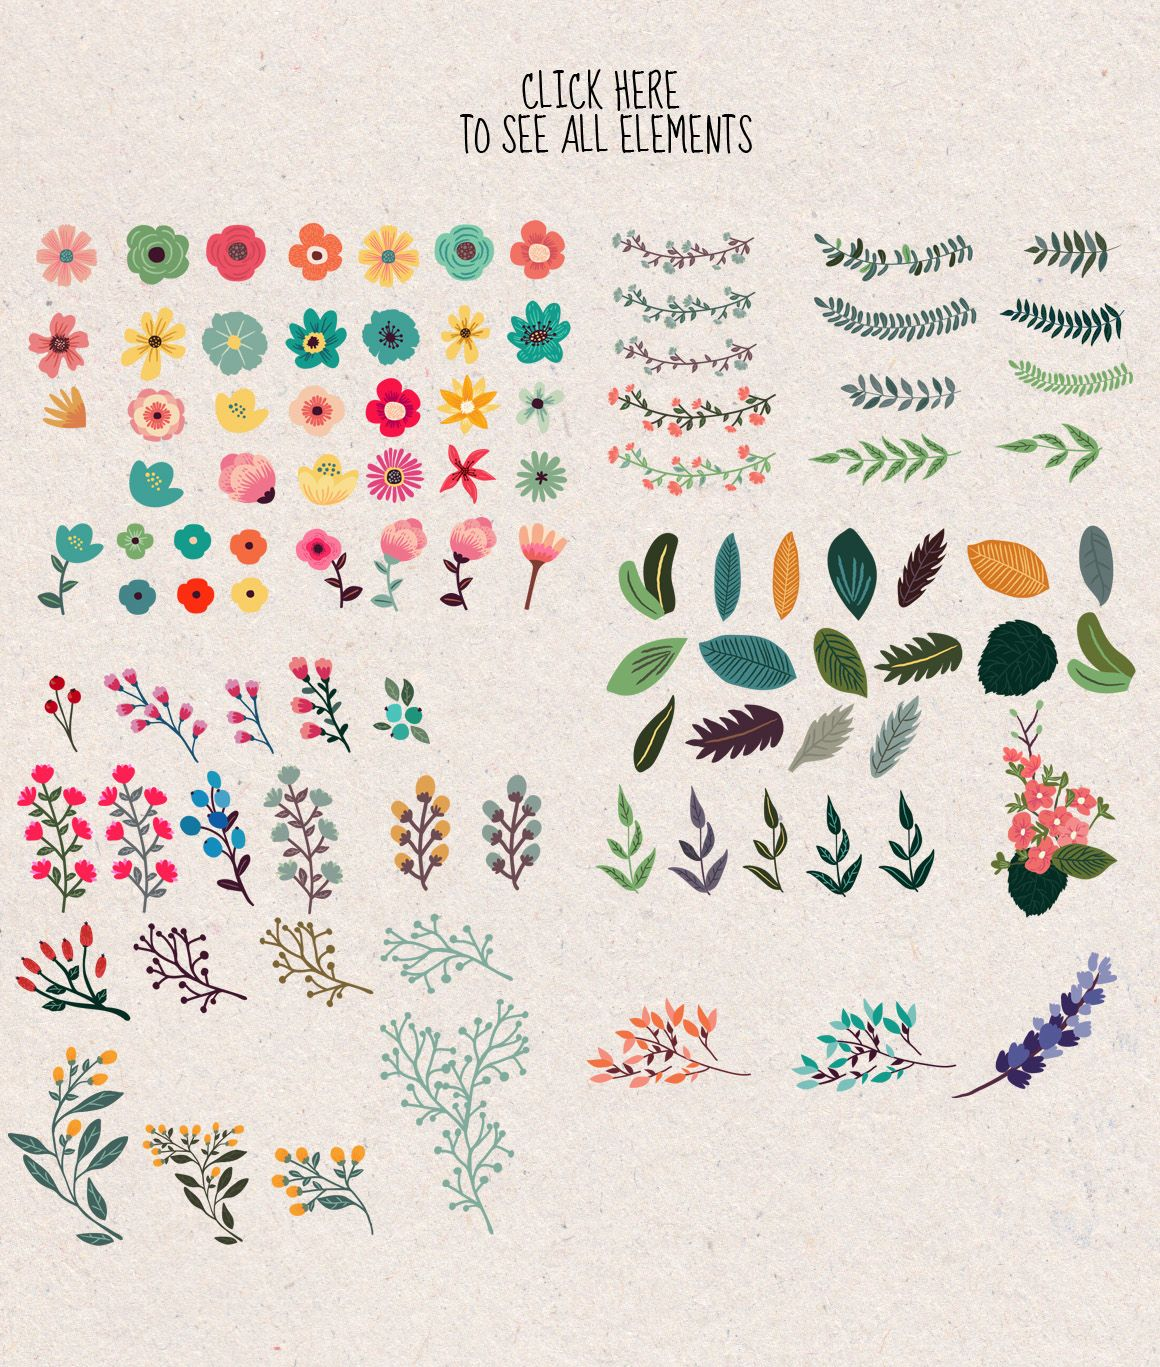 Photo of The large bunch of flowers from CLIPART GARDEN on Creative Market